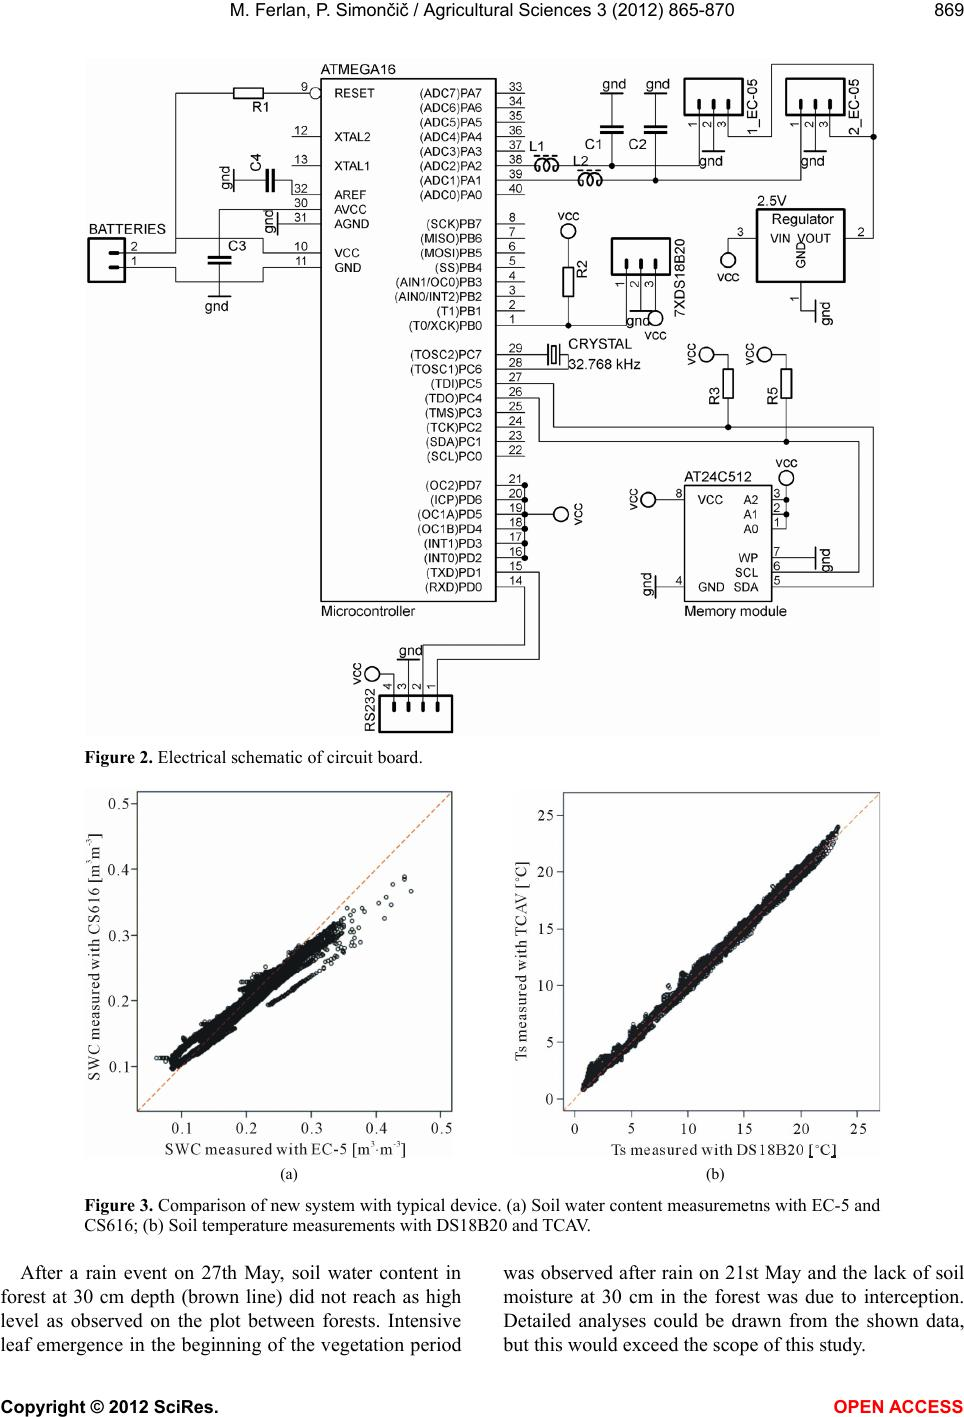 Robust And Cost Effective System For Measuring Logging Of Data Digital Thermometer Using 8051 Electronic Circuits Diagram M Ferlan P Simoni Agricultural Sciences 3 2012 865 870